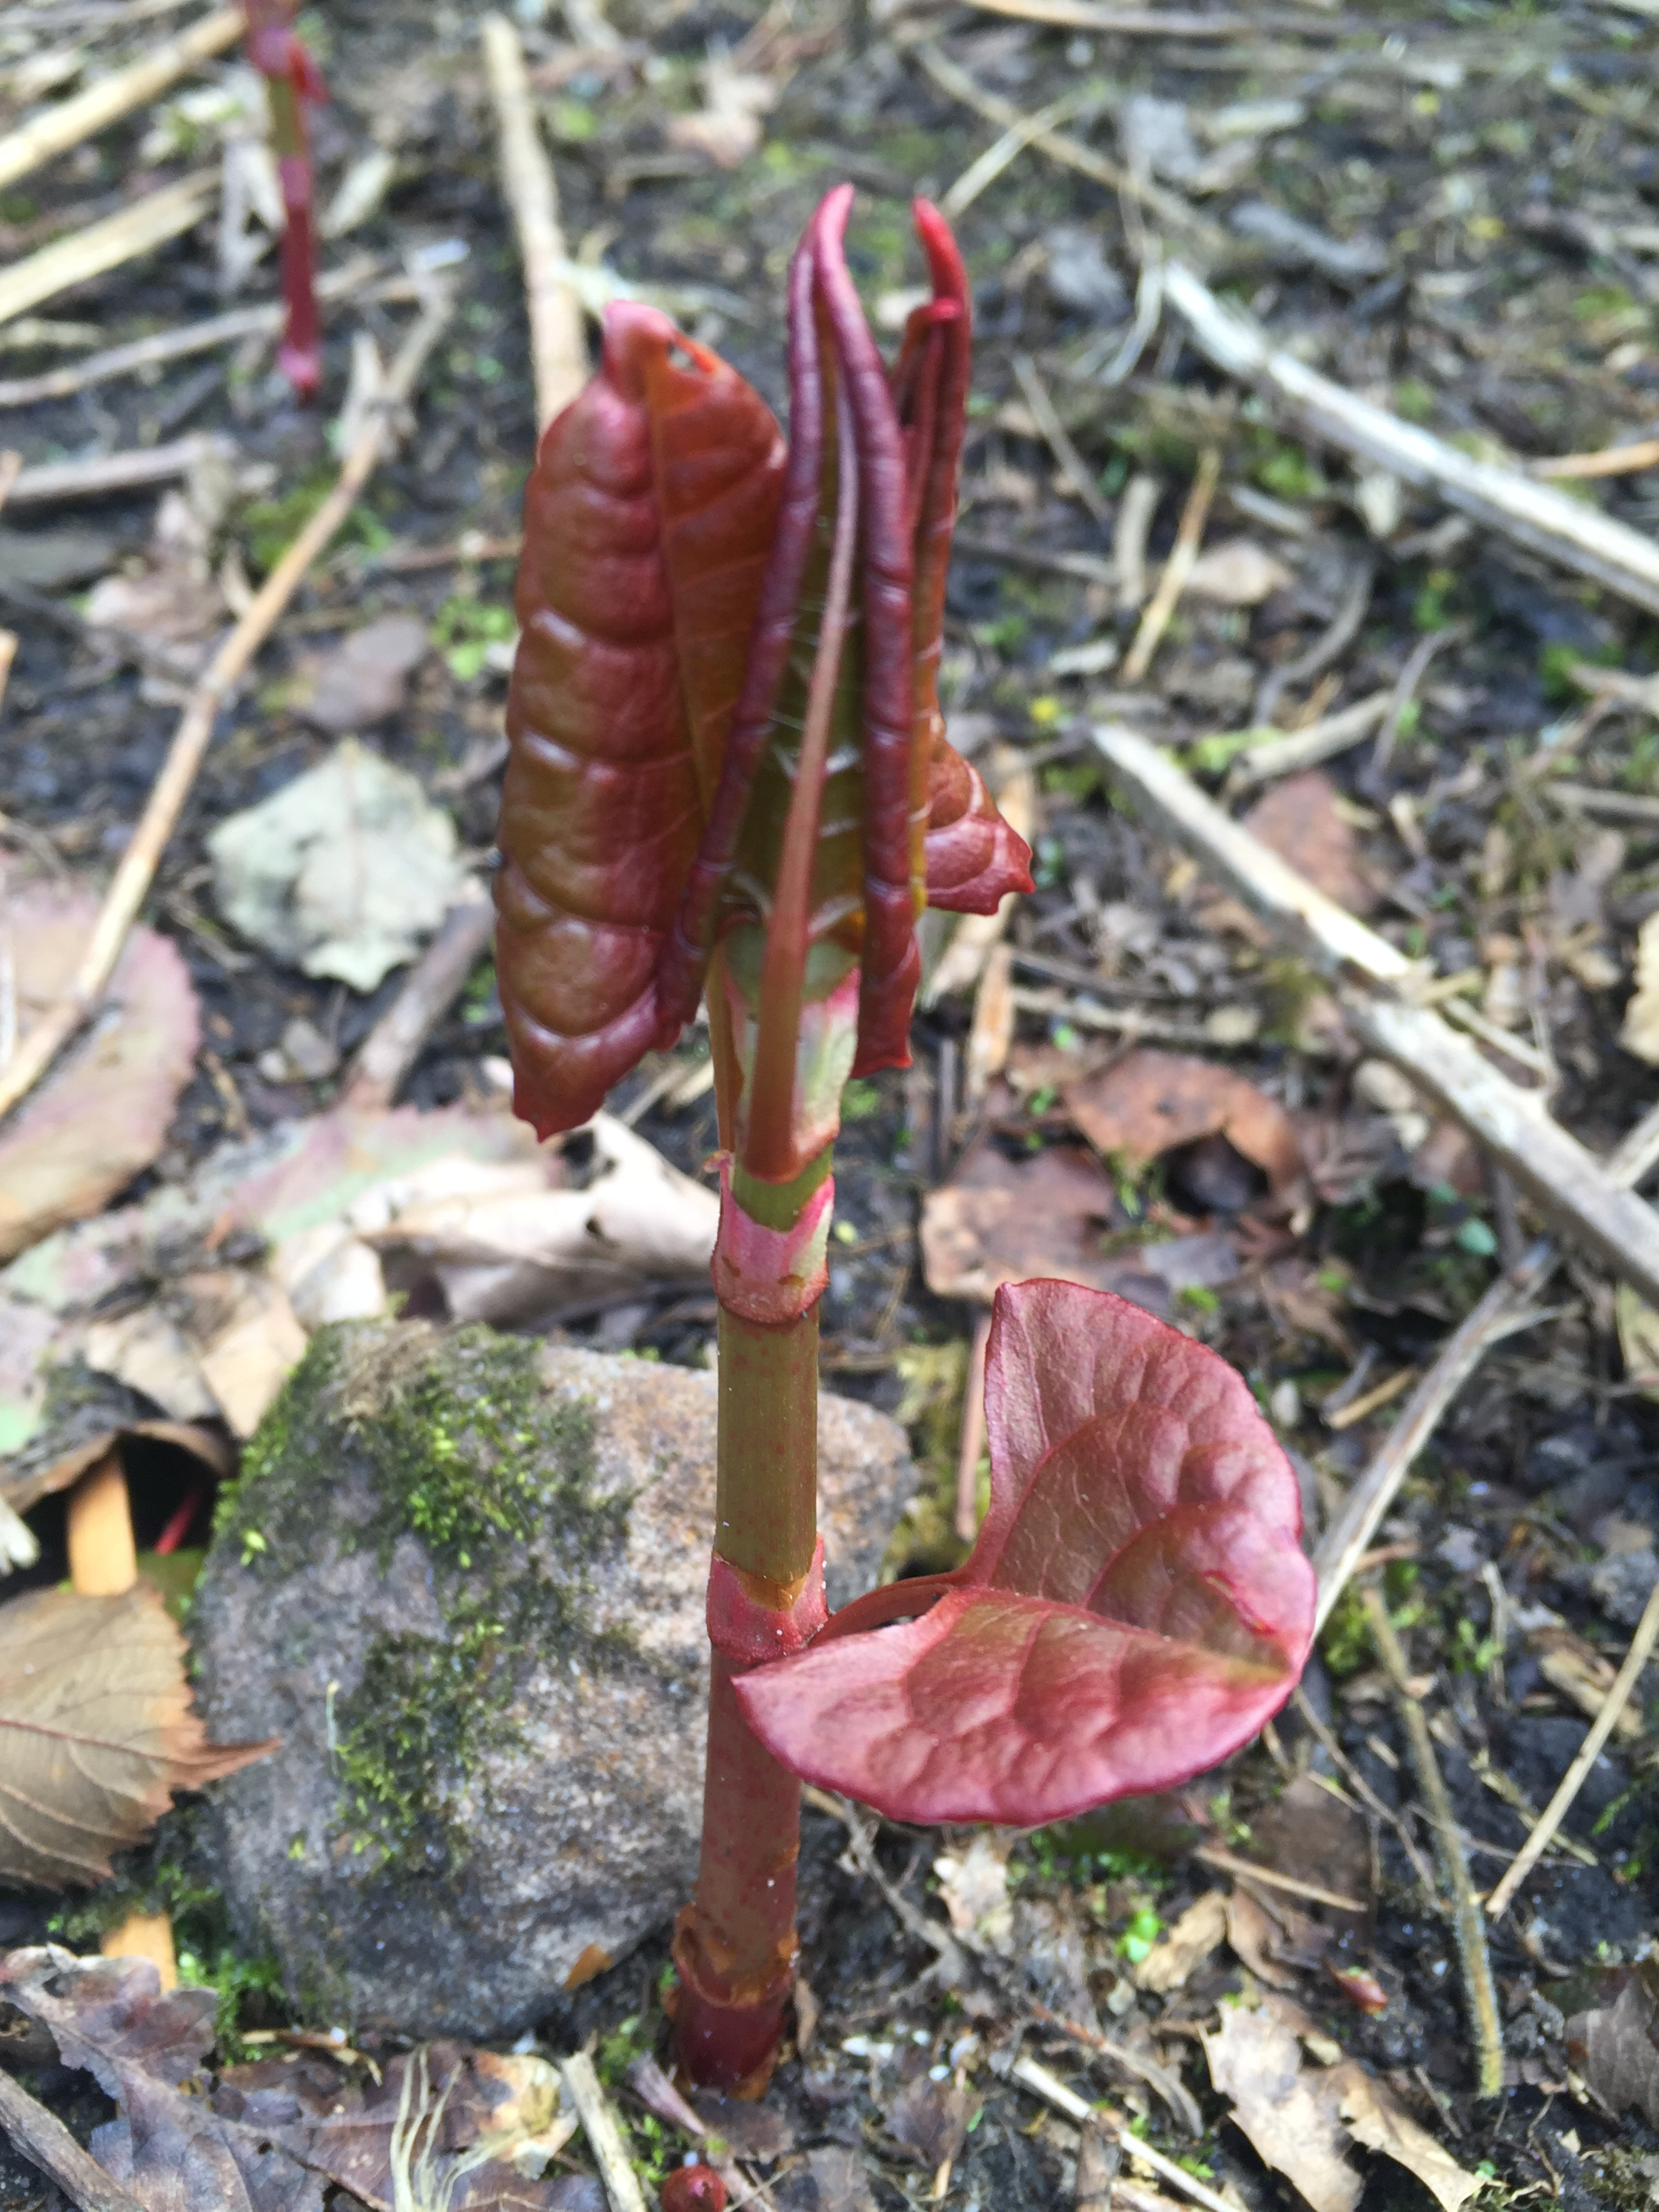 Japanese-Knotweed-new-stem-emerging